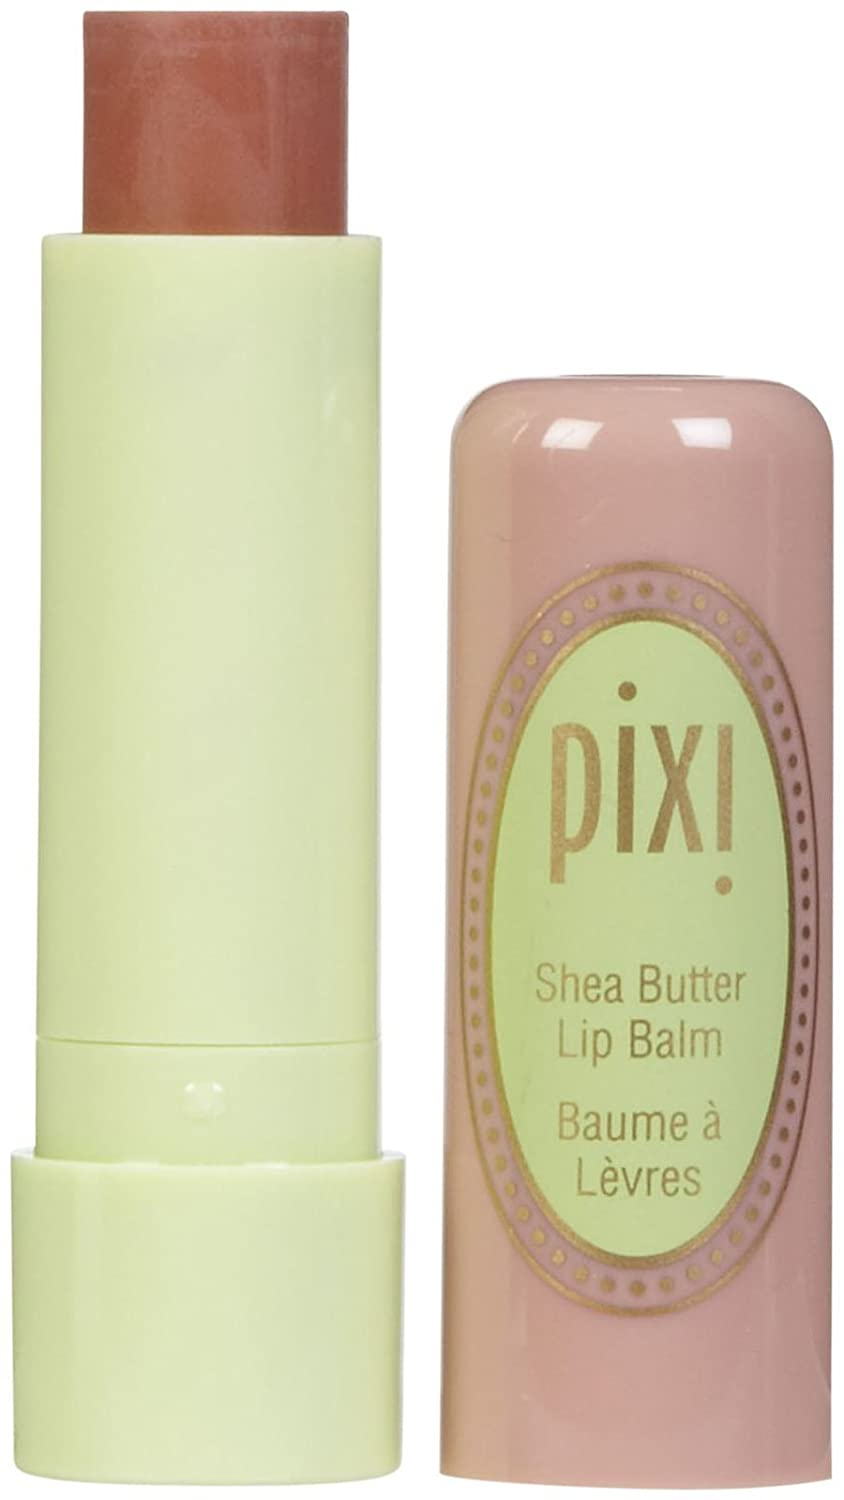 Pixi Shea Butter Lip Balm Honey Nectar 1 qty